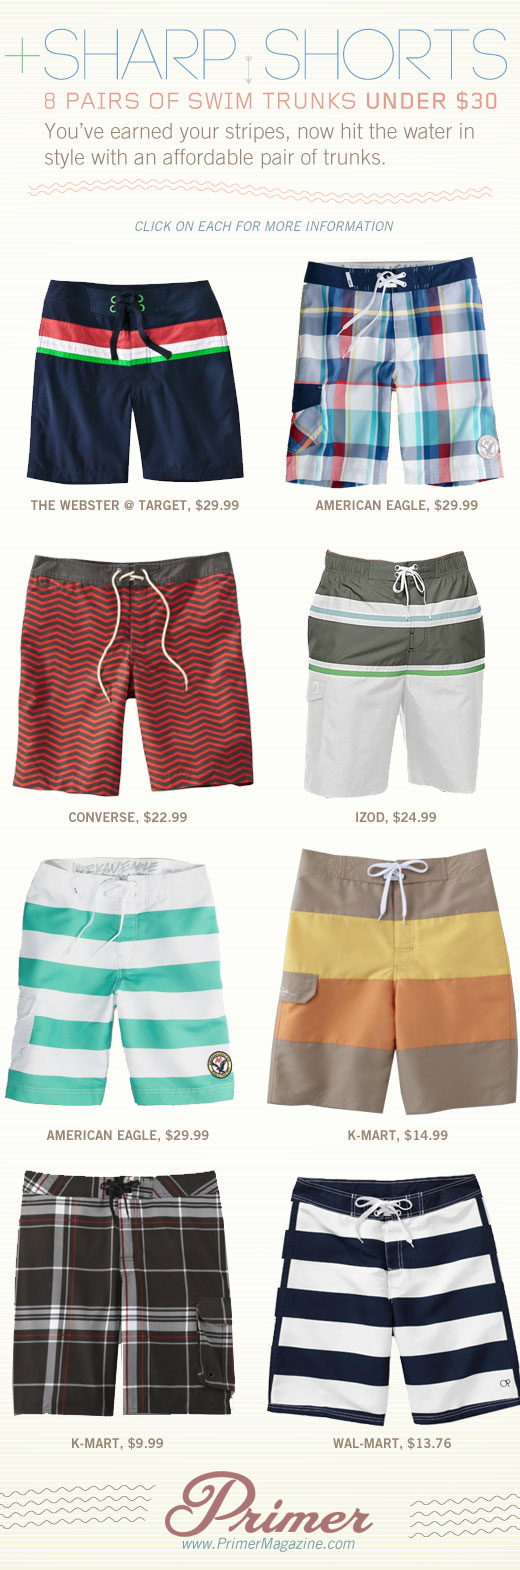 Collage of swim trunks